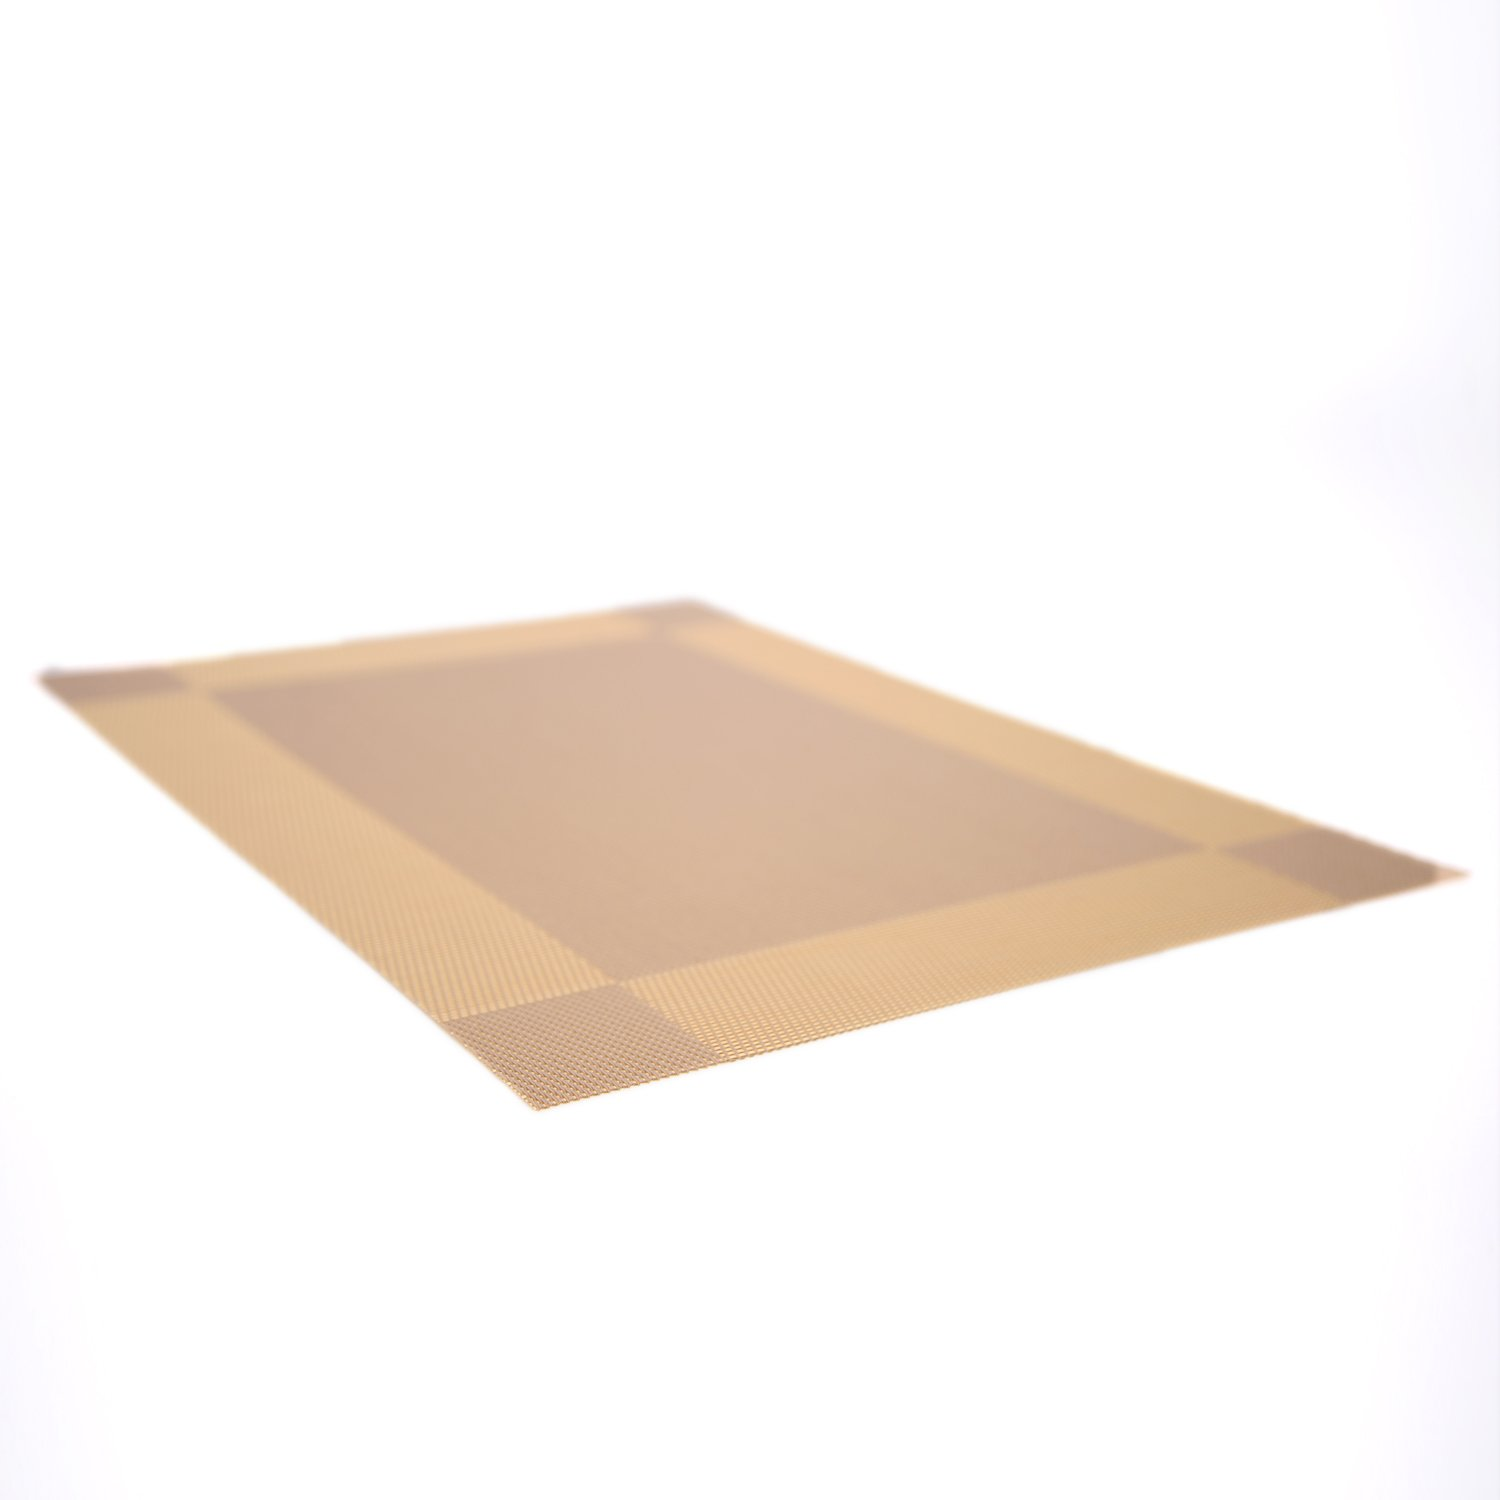 Set of 4 Placemats Only Supermarket Heat-resistant Placemats Stain Resistant Anti-skid Washable Textilene Table Mats Woven Vinyl Placemats Gold